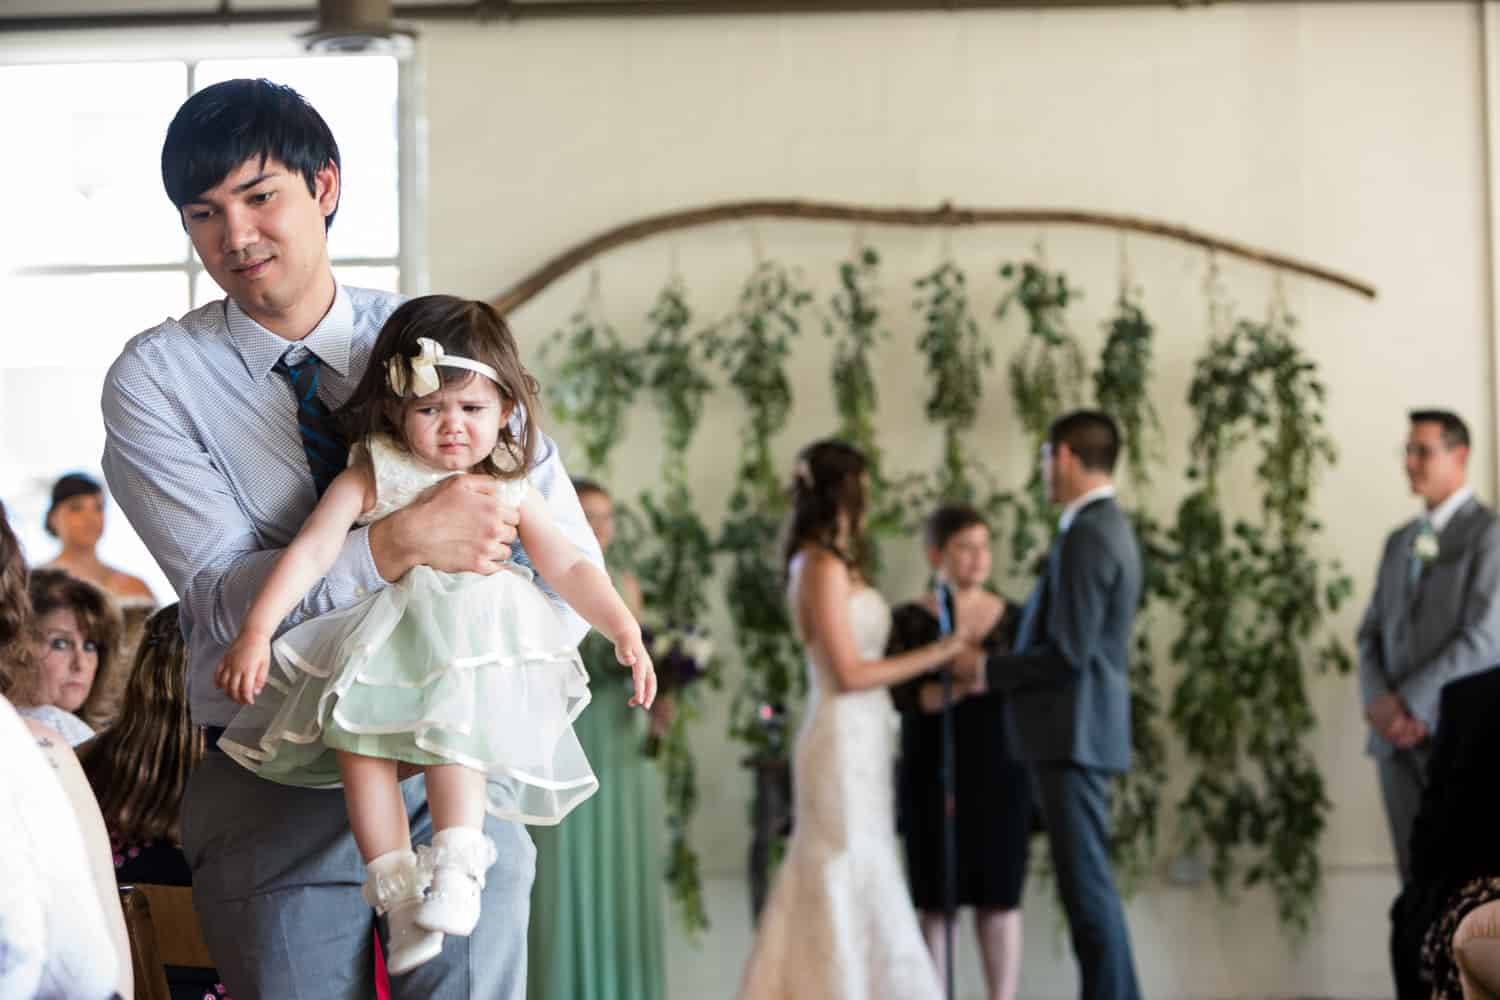 a grumpy looking flower girl gets carried by her father while the ceremony goes on.